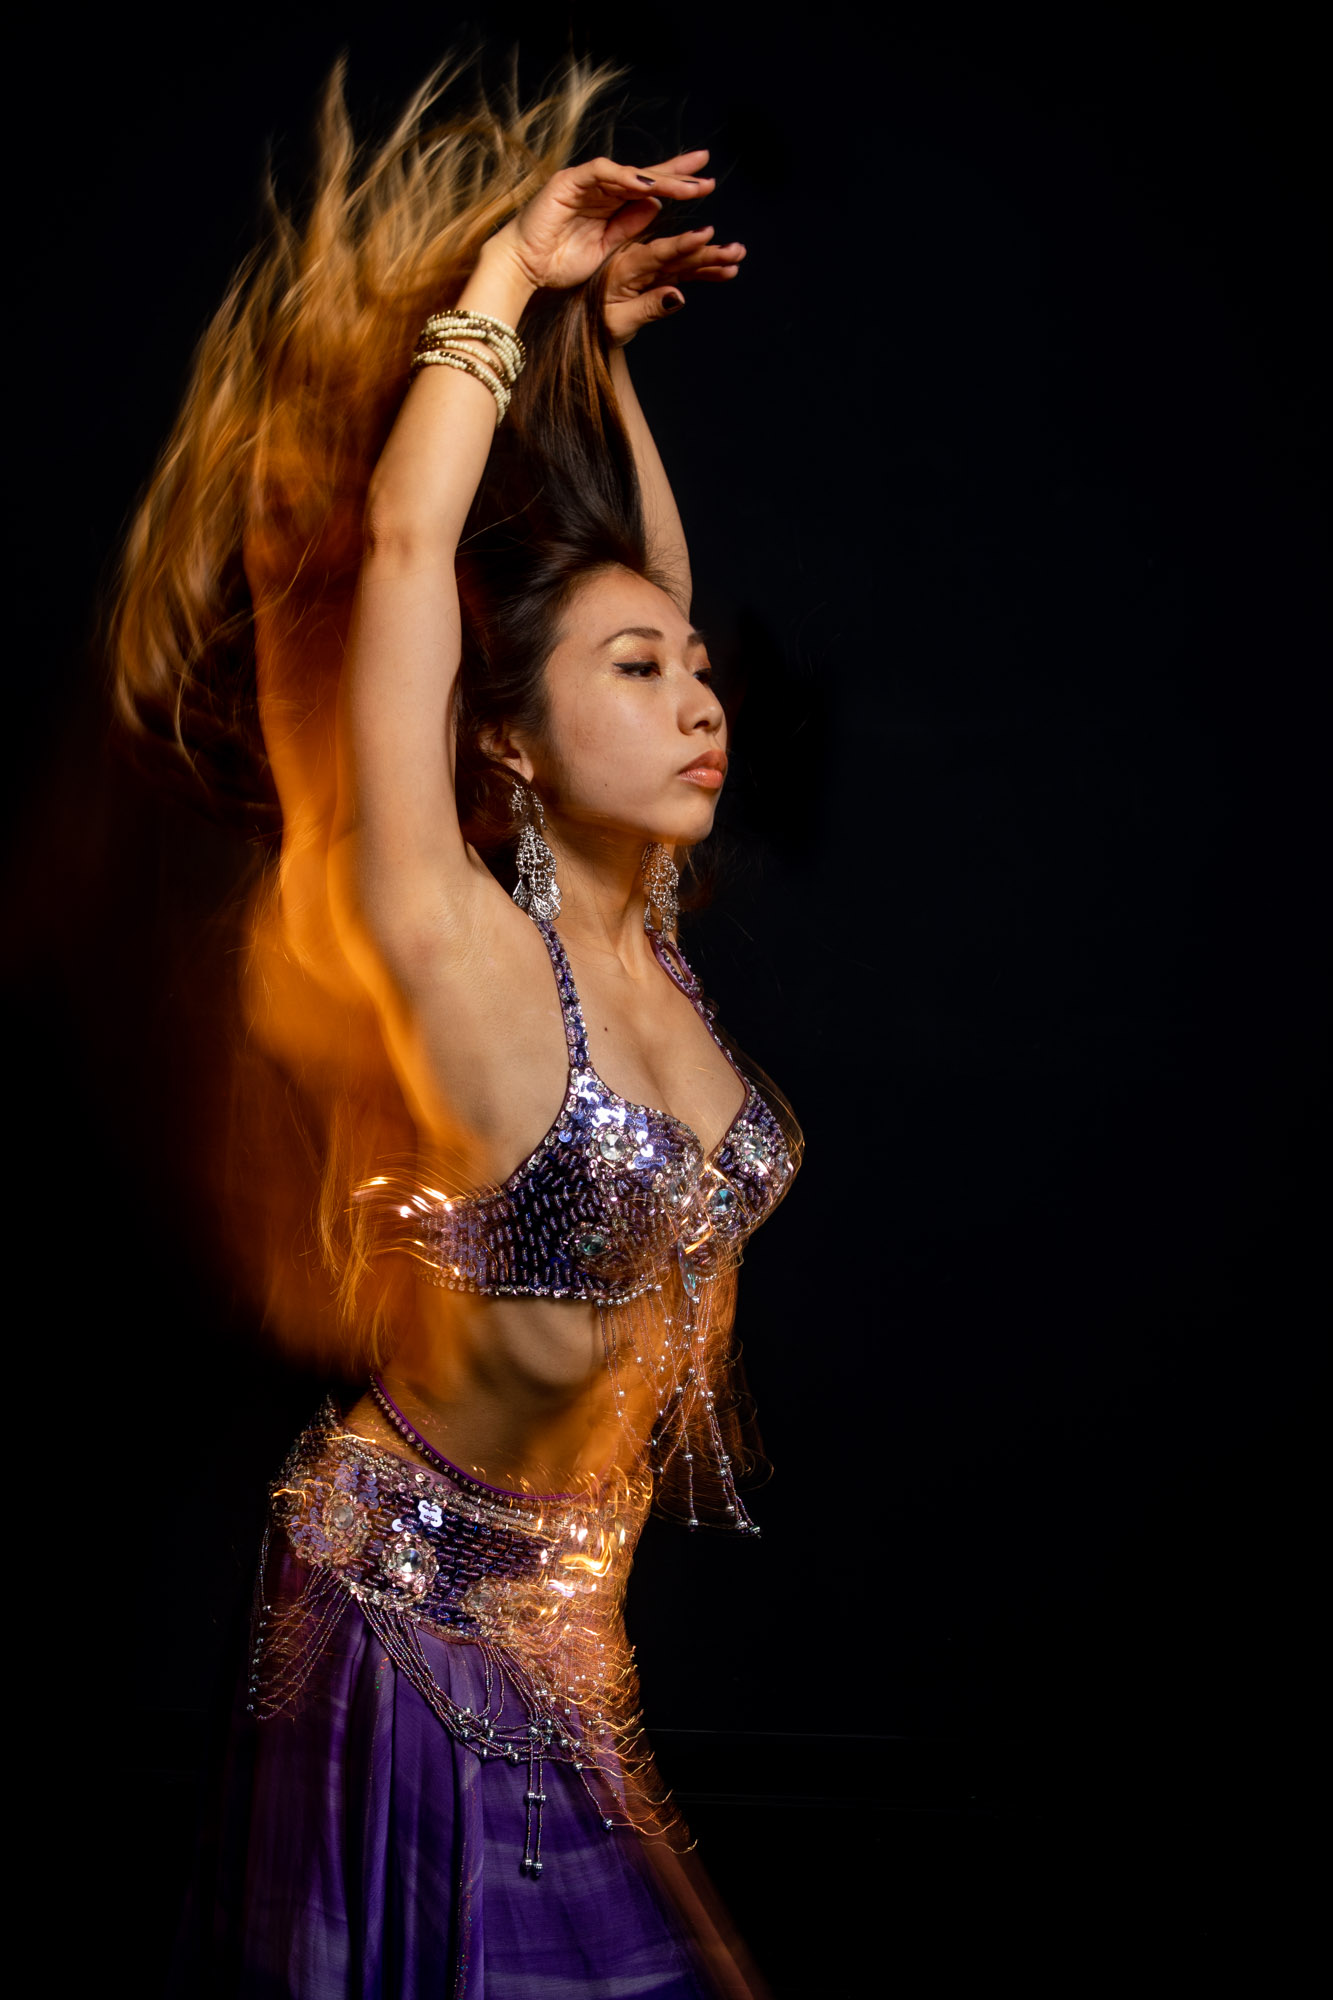 a belly dancer frozen in motion